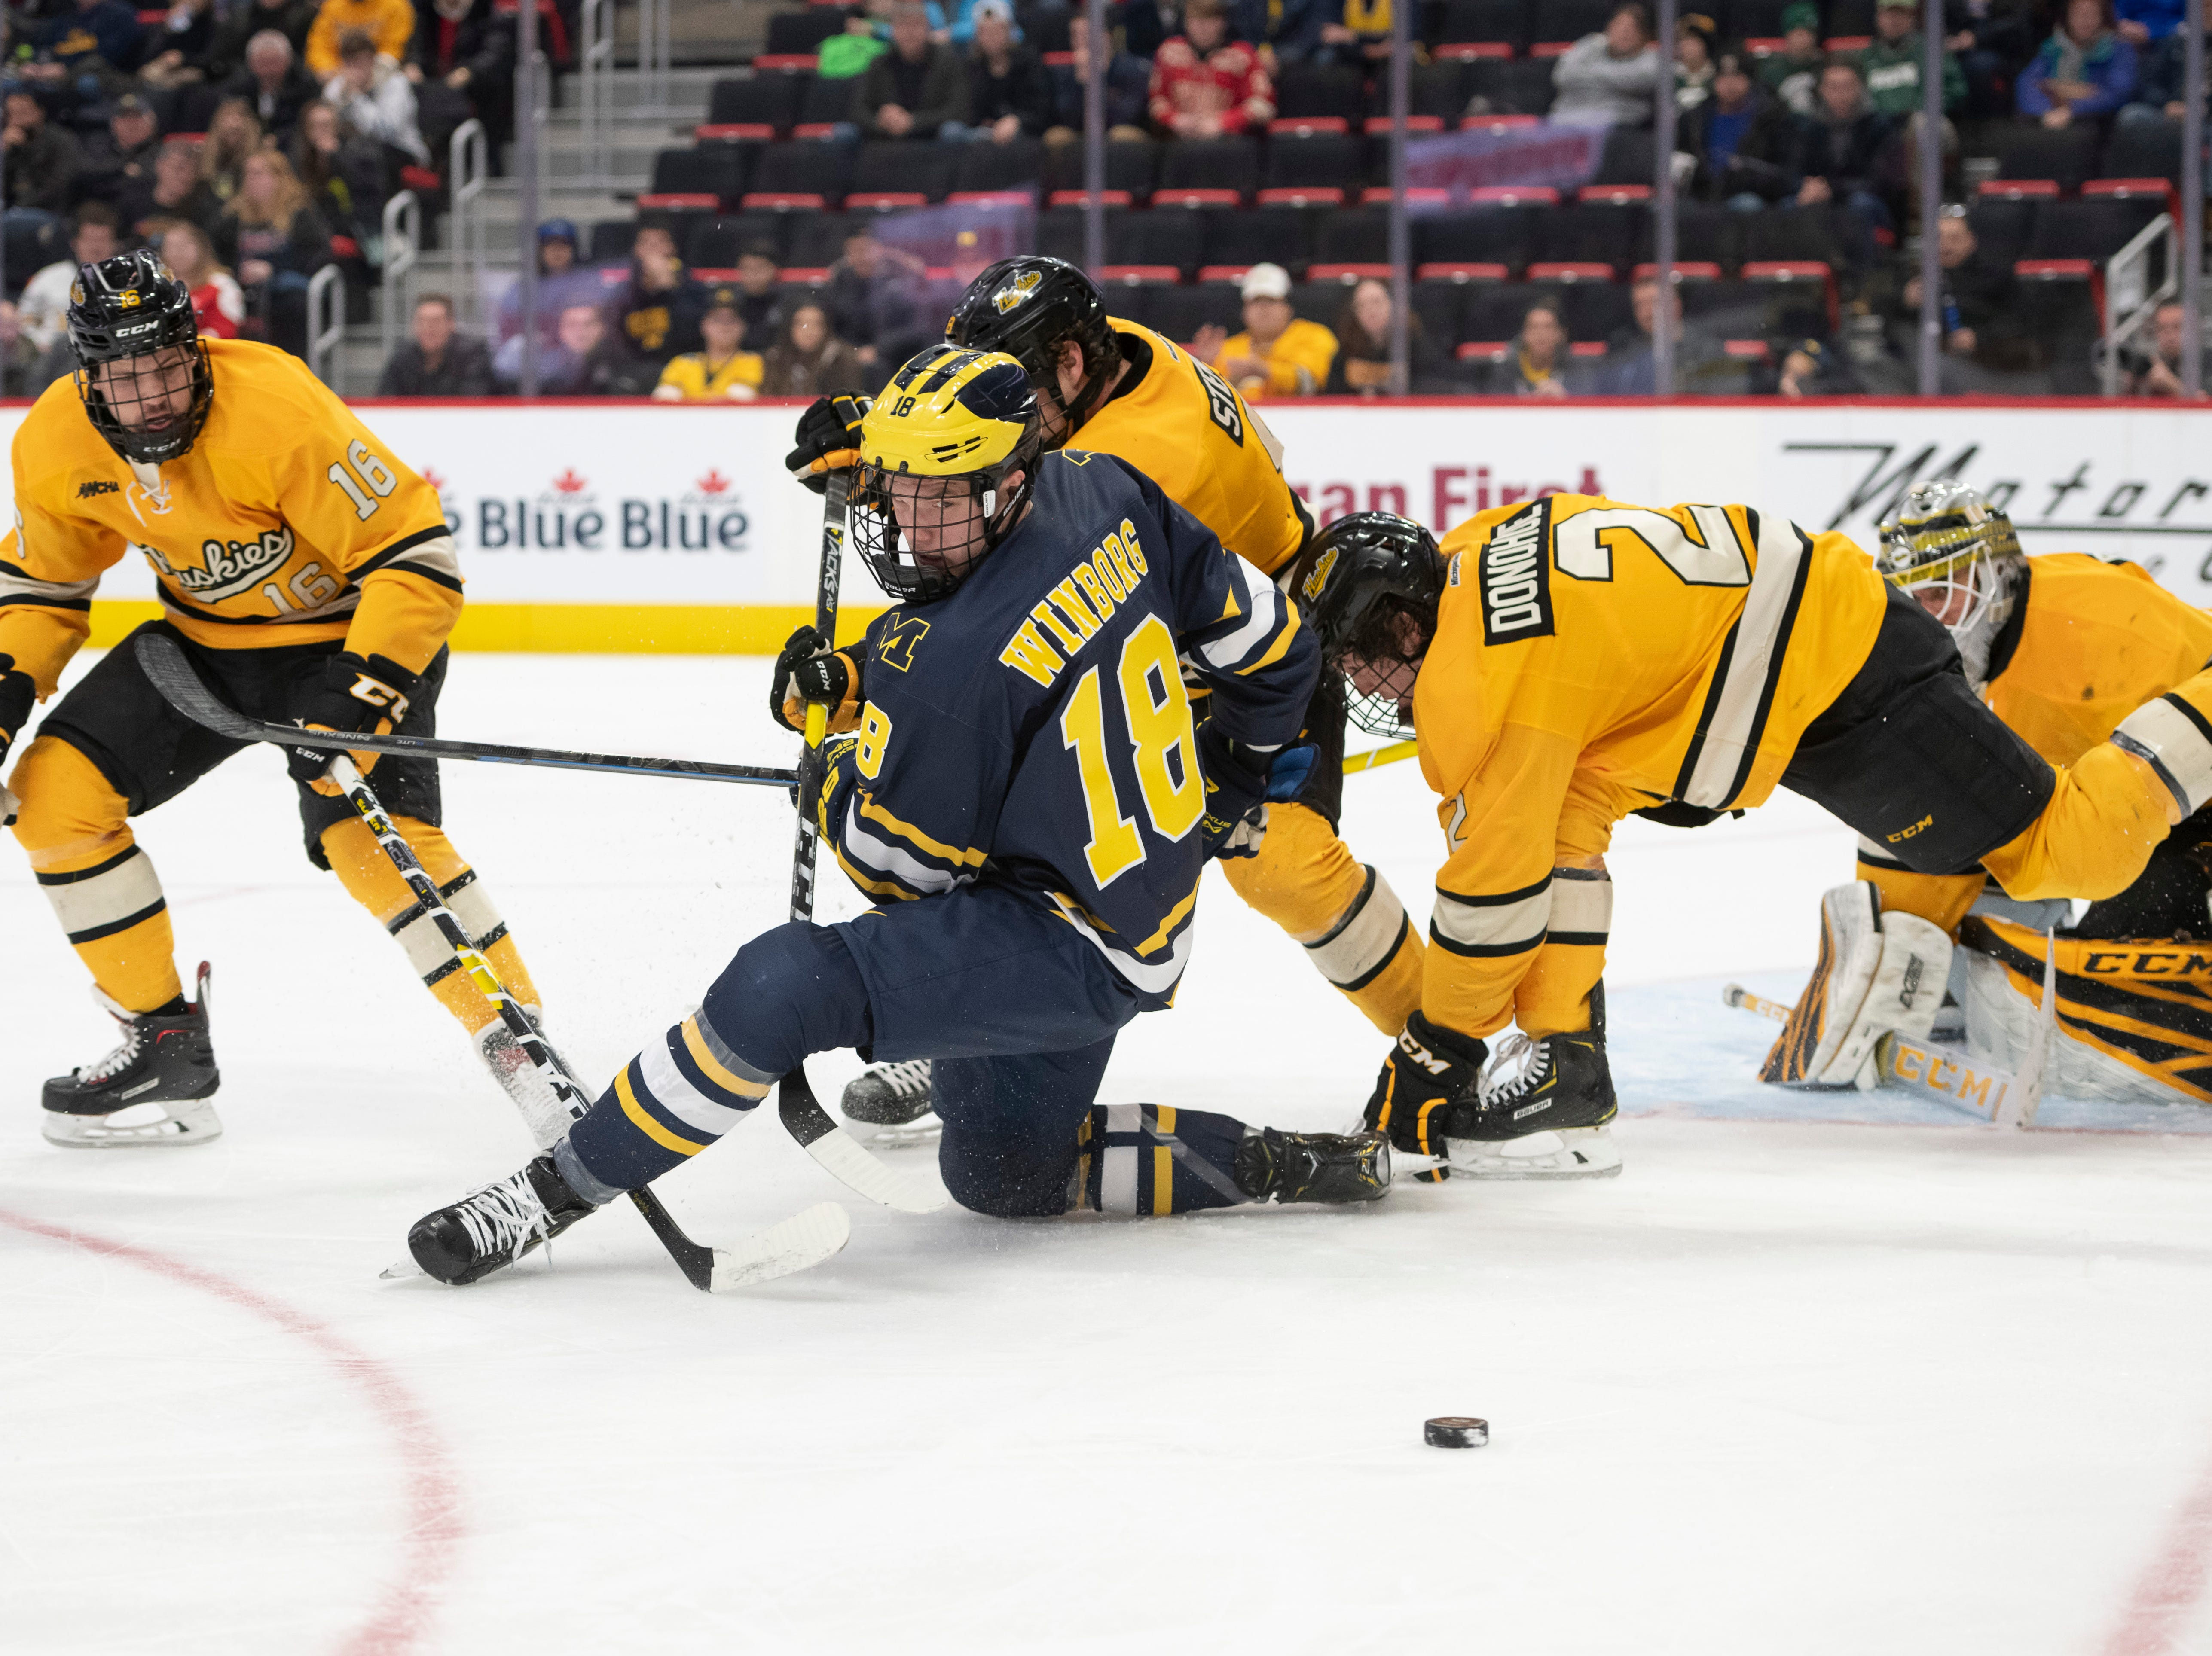 Michigan forward Adam Winborg tries to control a loose puck in front of Michigan Tech's net in the second period.